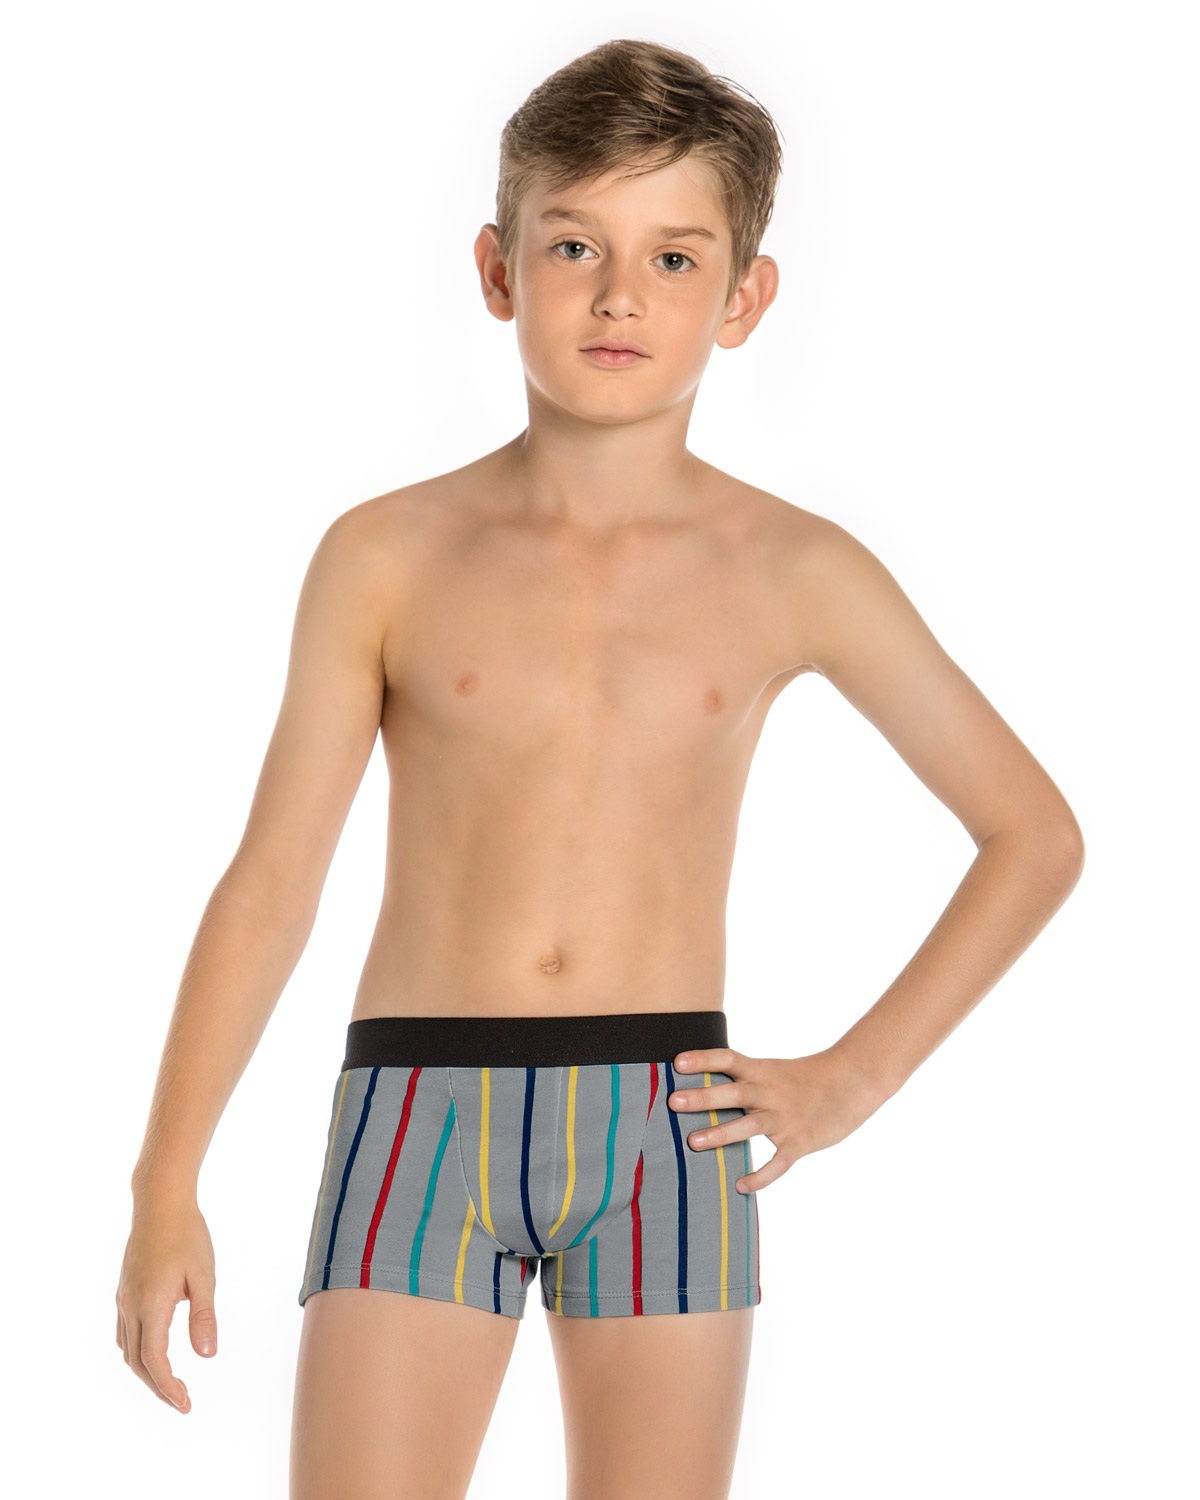 Find affordable and cute toddler boy socks & underwear at allshop-eqe0tr01.cf Visit Carter's and buy quality kids, toddlers, and baby clothes from a trusted name in baby apparel.